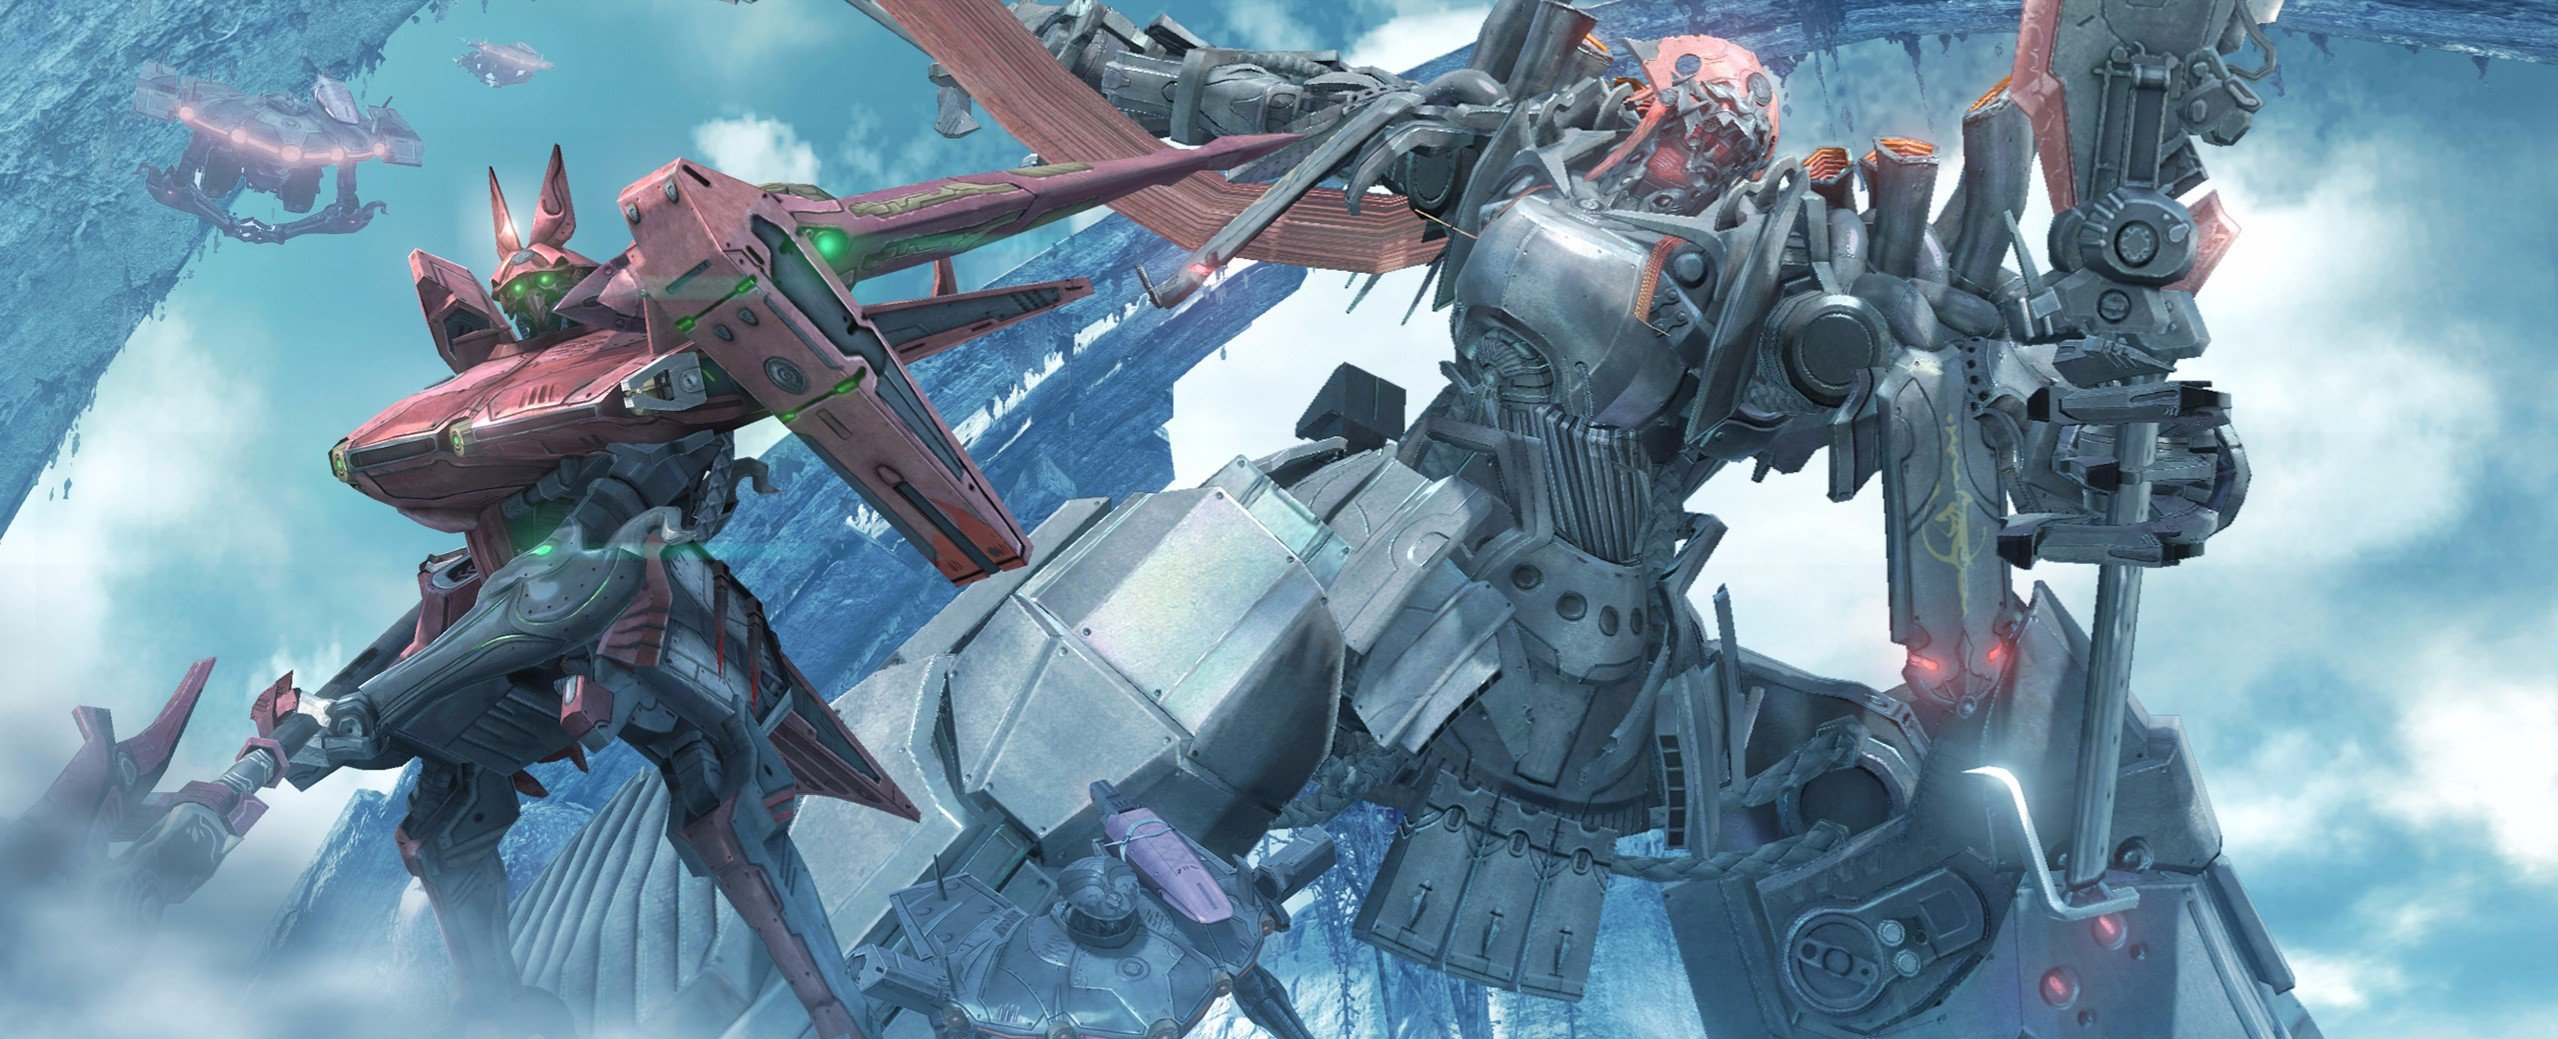 xenoblade chronicles wii pal scrubbed -tls torrent